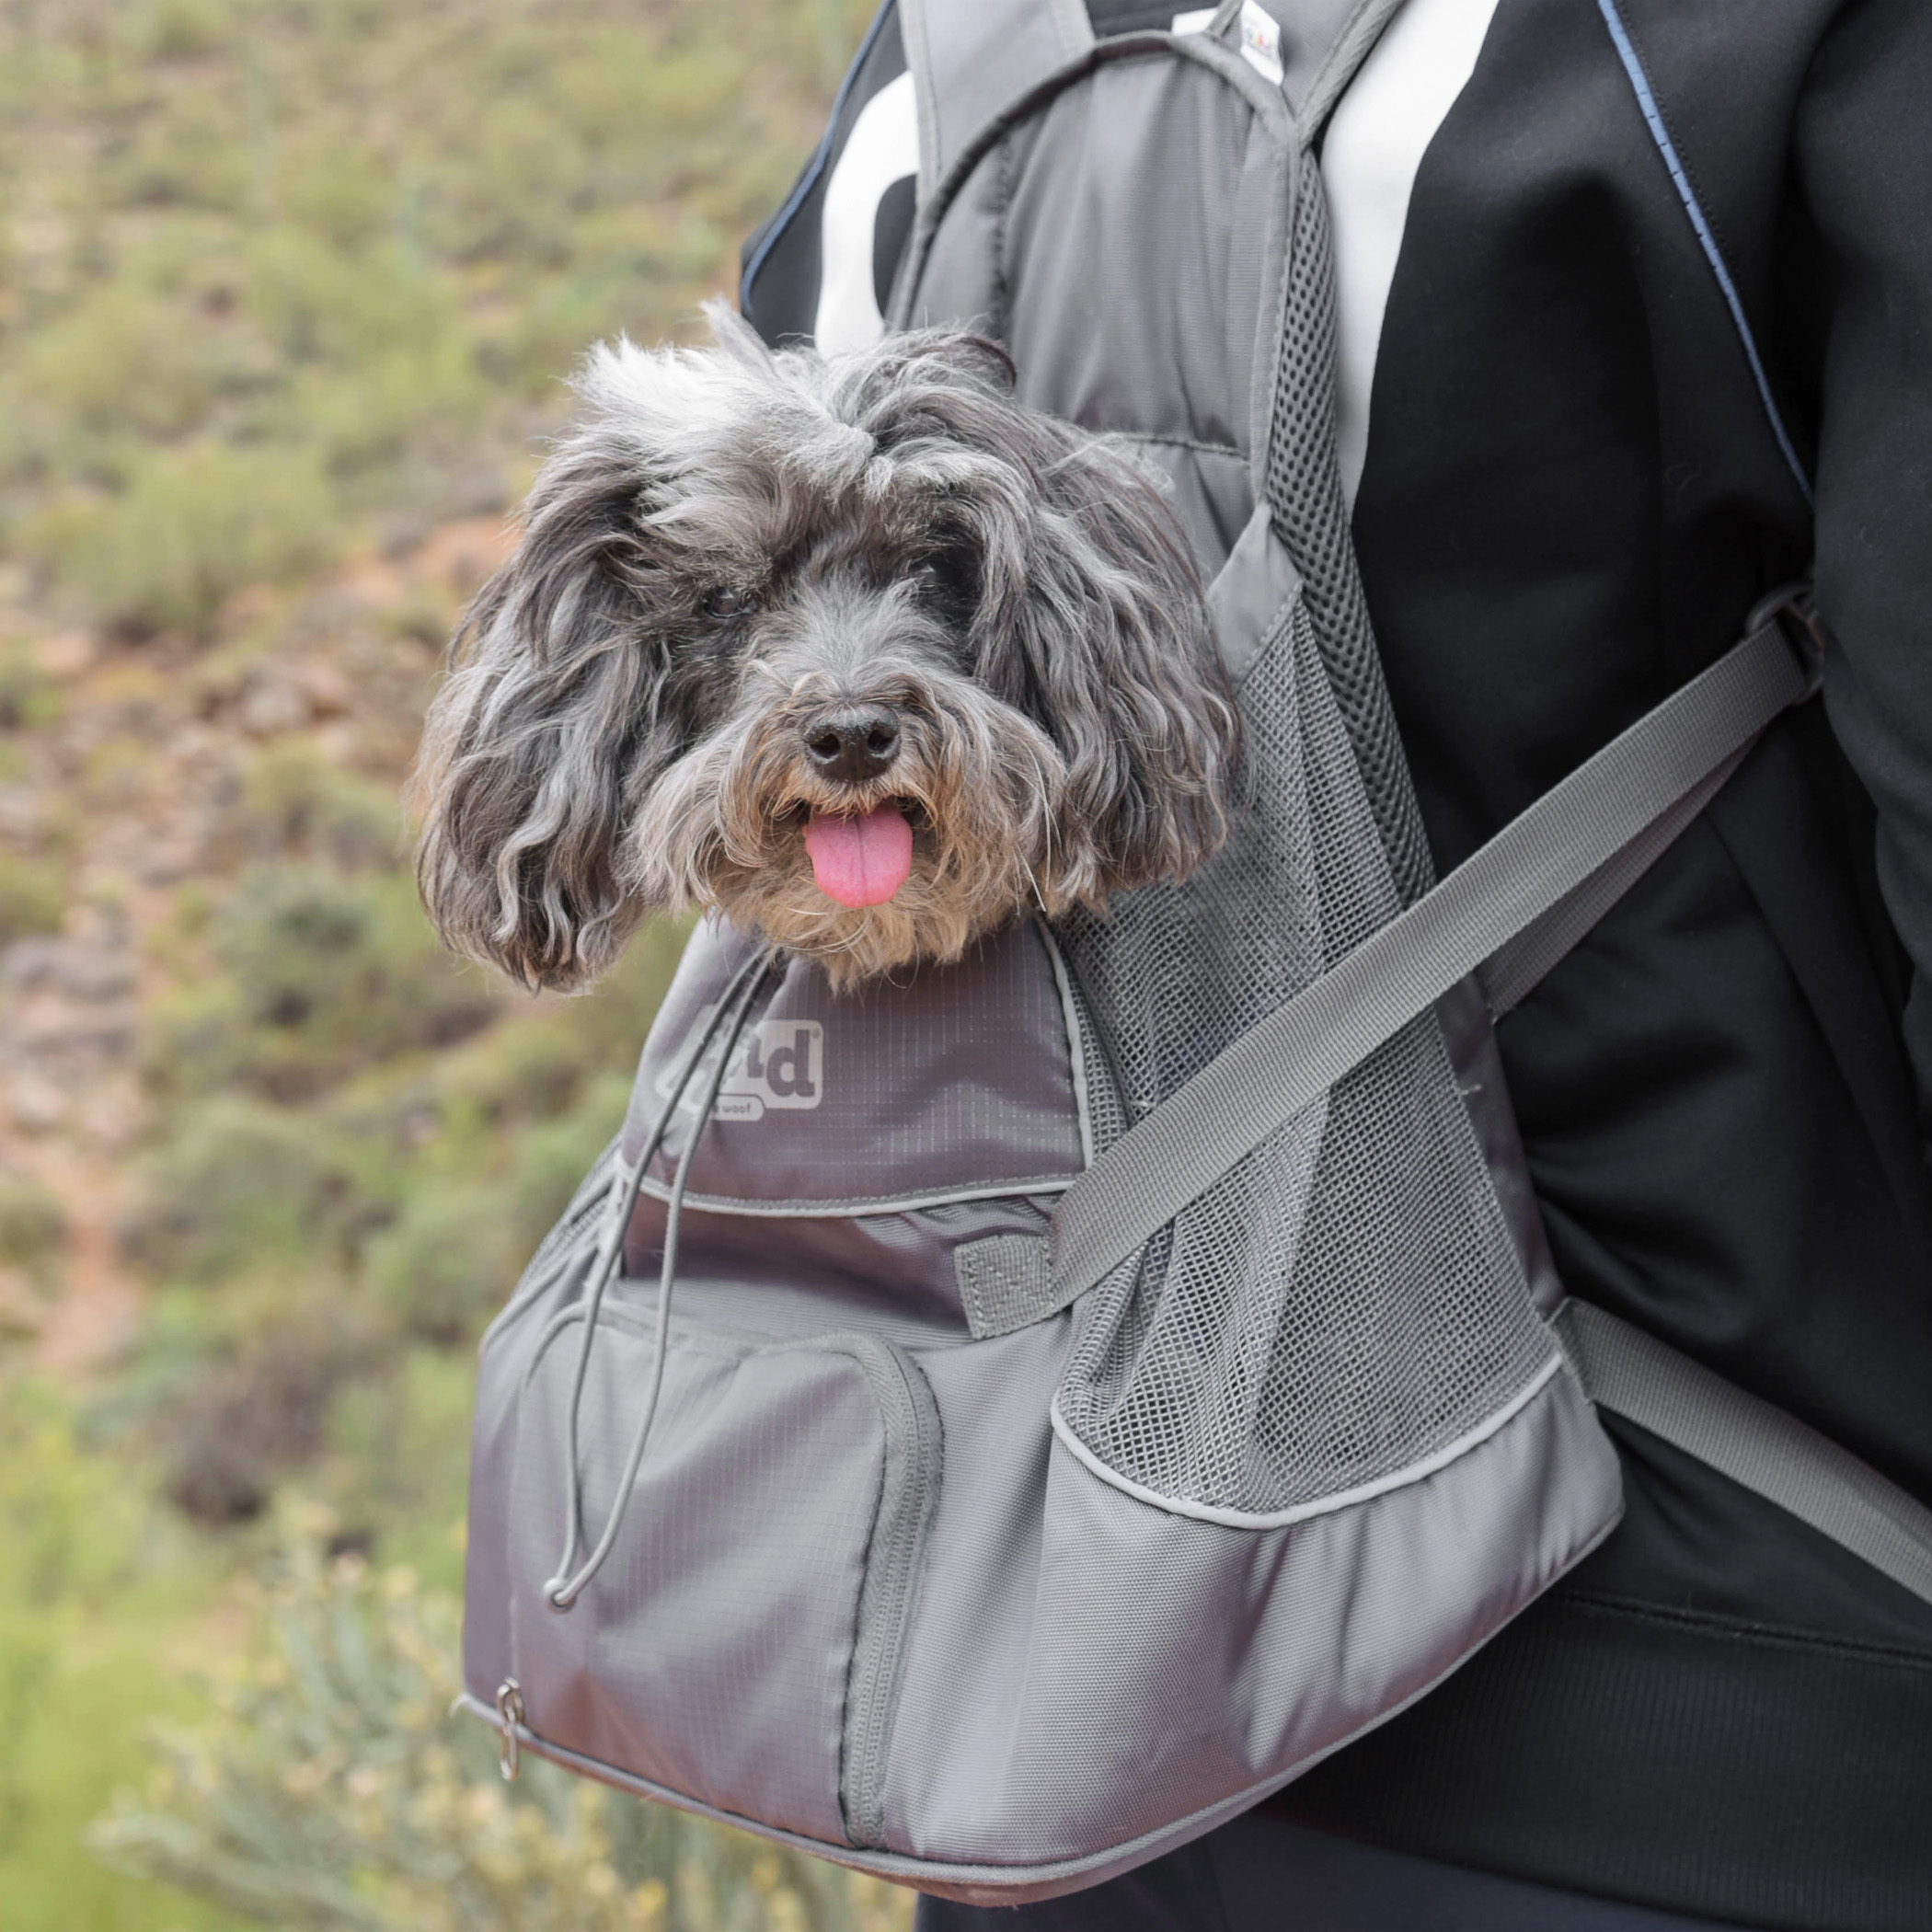 If you've ever wondered how Joey & Benji go hiking, this is how. Joey rides with his Daddy (so he can keep an eye on Mom!), and Benji rides with Mom. The backpacks are from  Outward Hound and are made just for pups. They're easy to load in and easy to load out when we need to make a photo shoot pit stop. They both love being along for the ride! It's the perfect solution when you have one 15 year old pup and one blind & deaf pup.